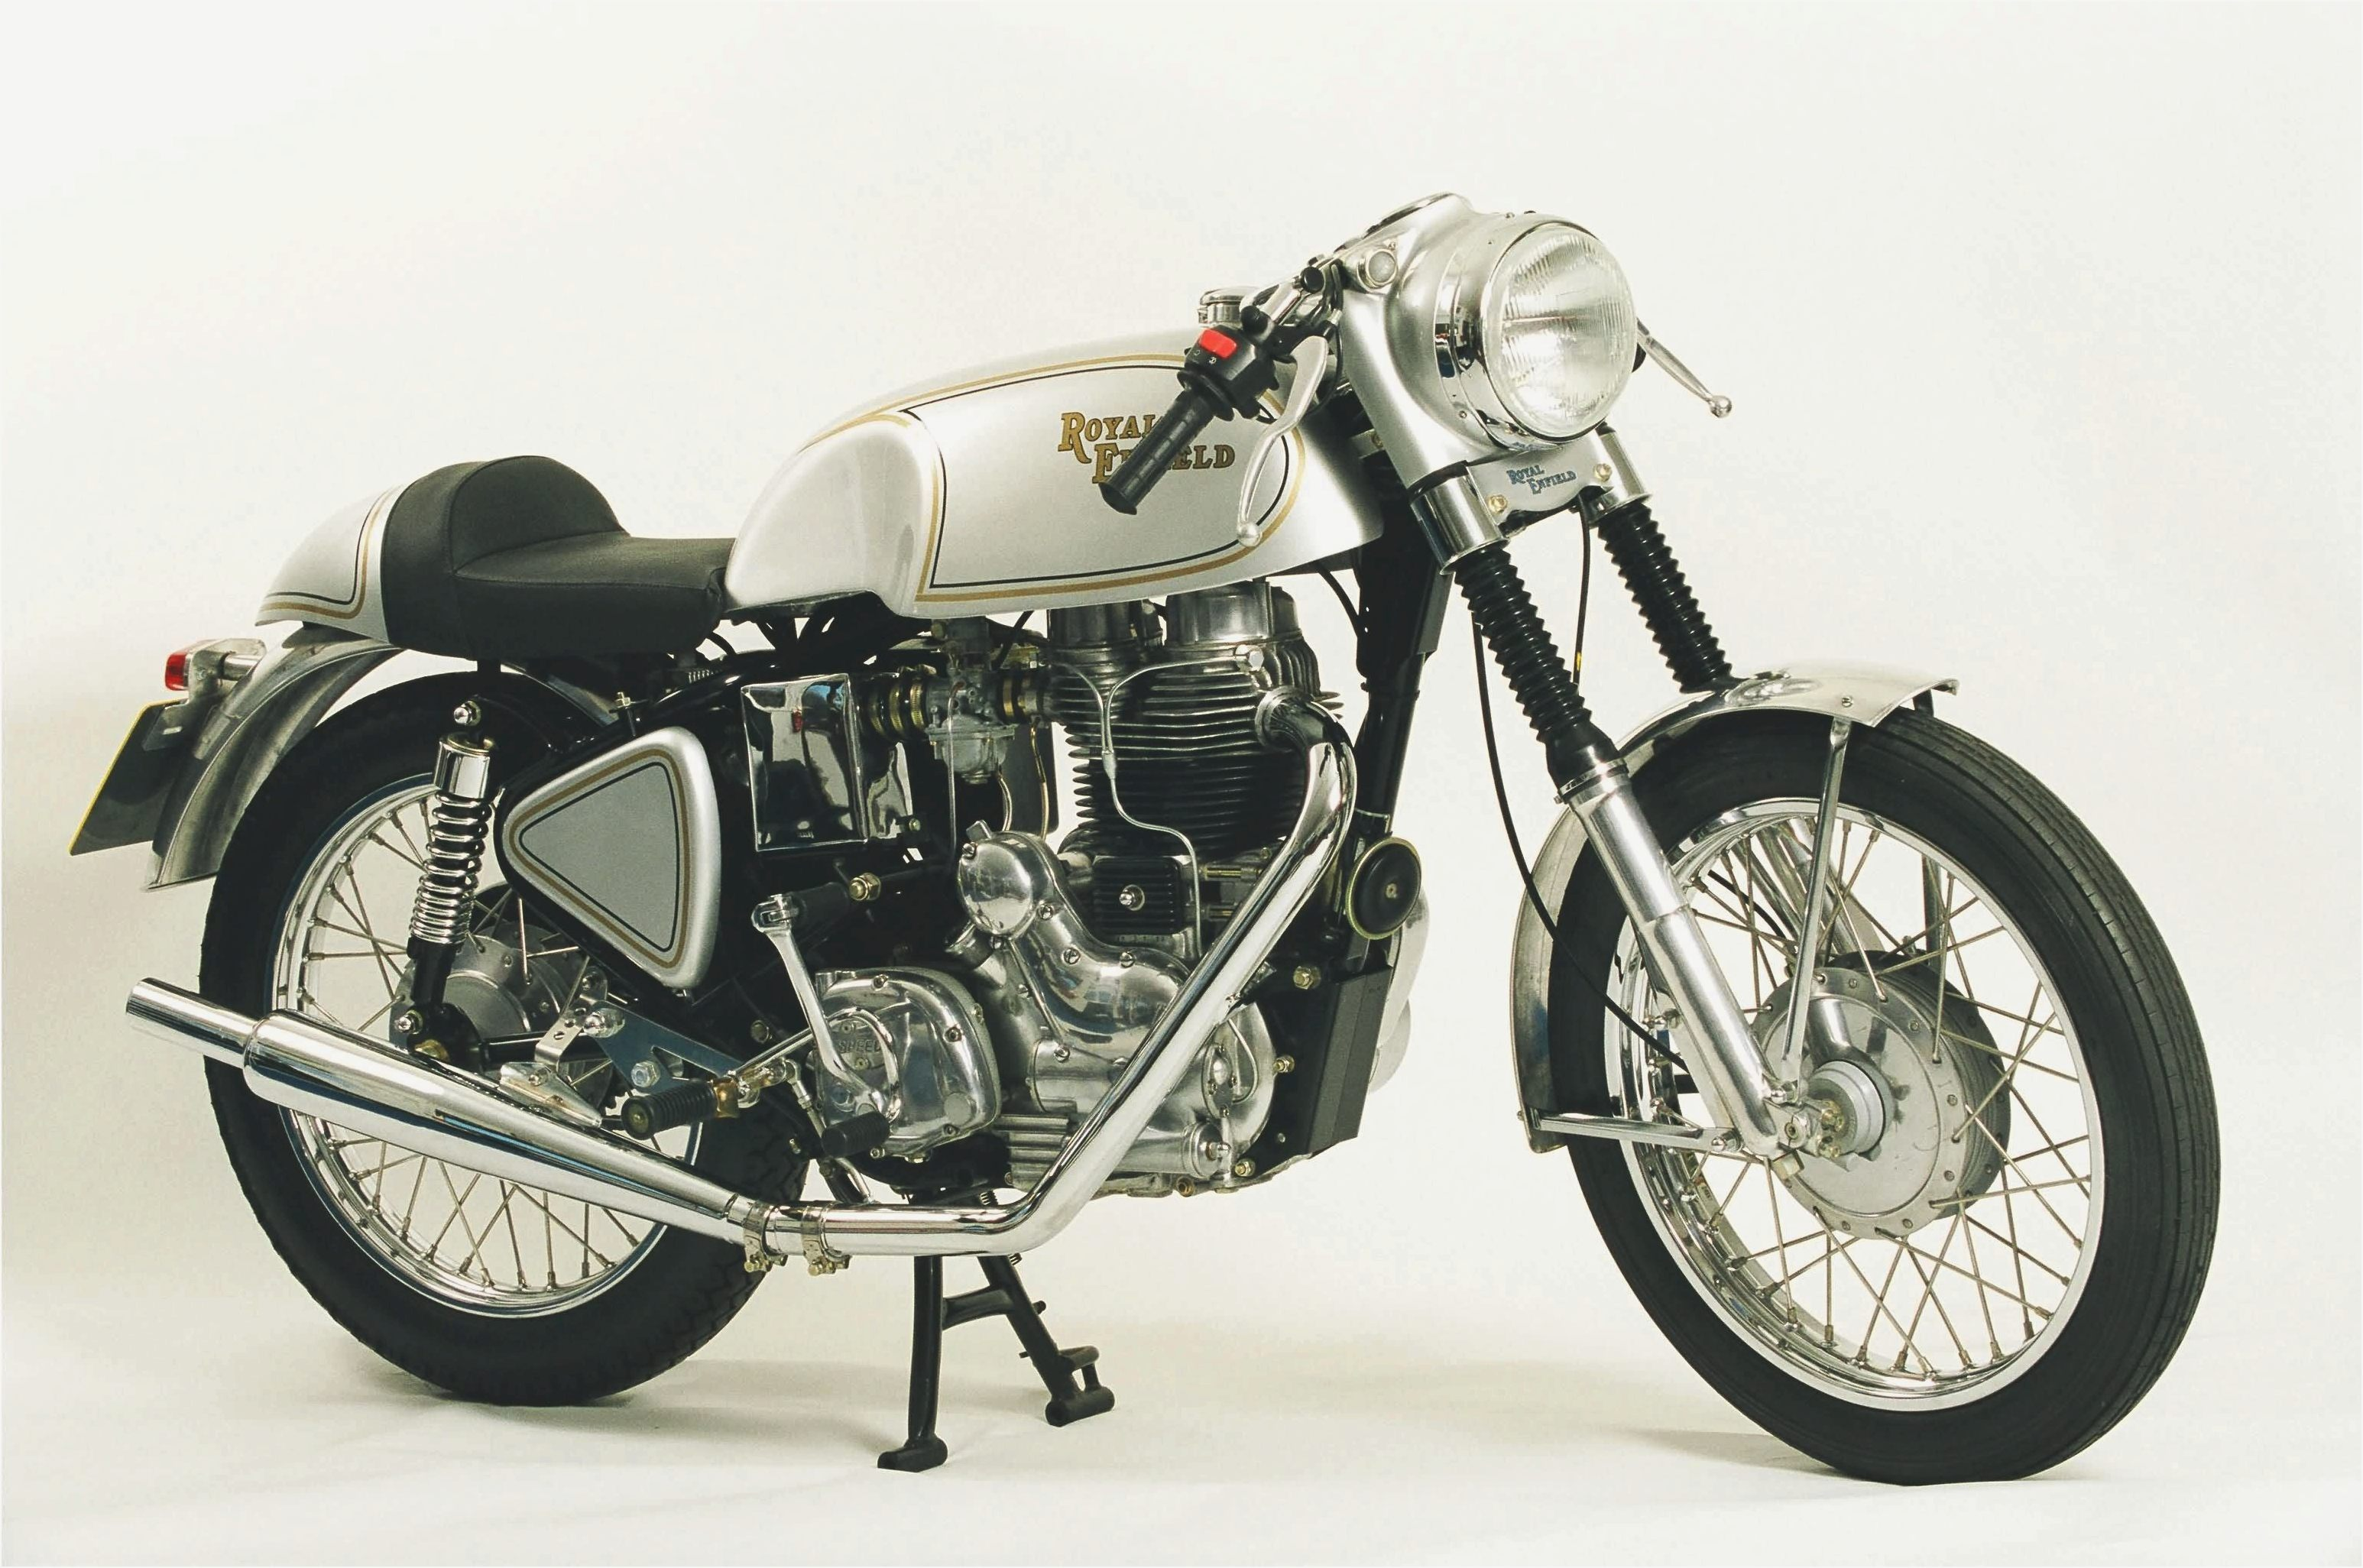 Royal Enfield Bullet 500 S Clubman 2003 images #123067